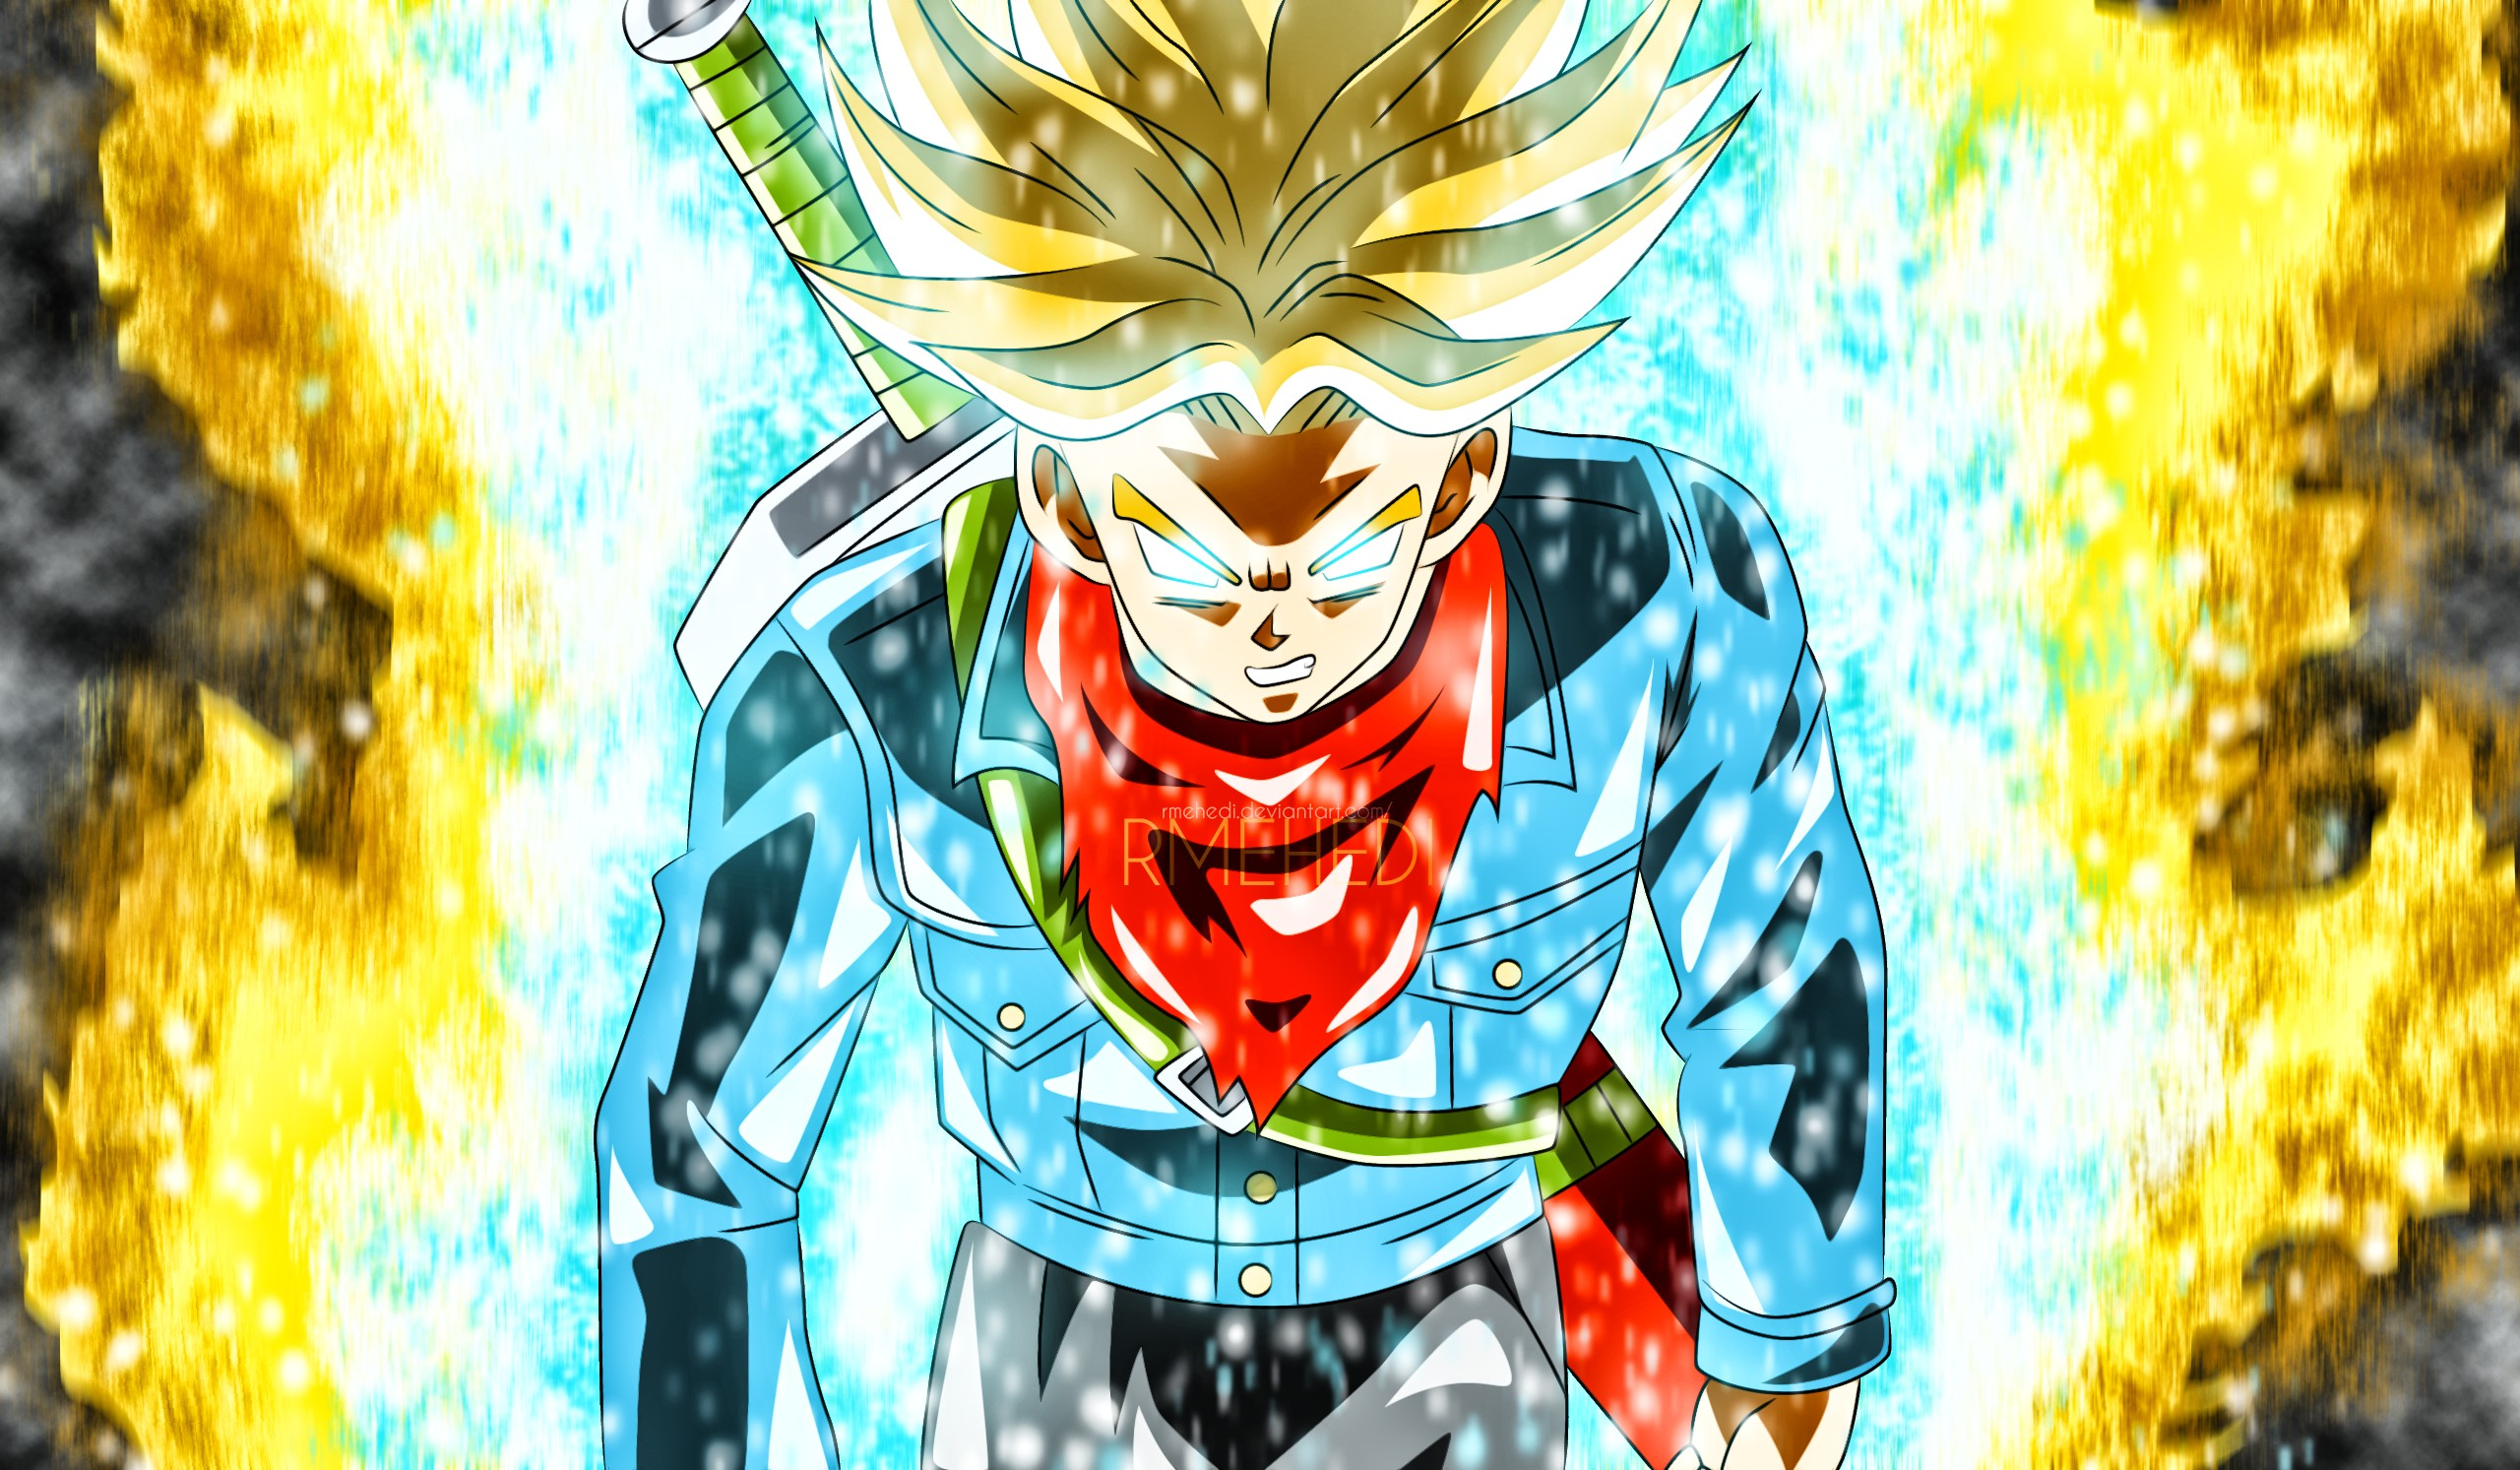 Dragon Ball Super Wallpaper ·① Download Free Awesome Full